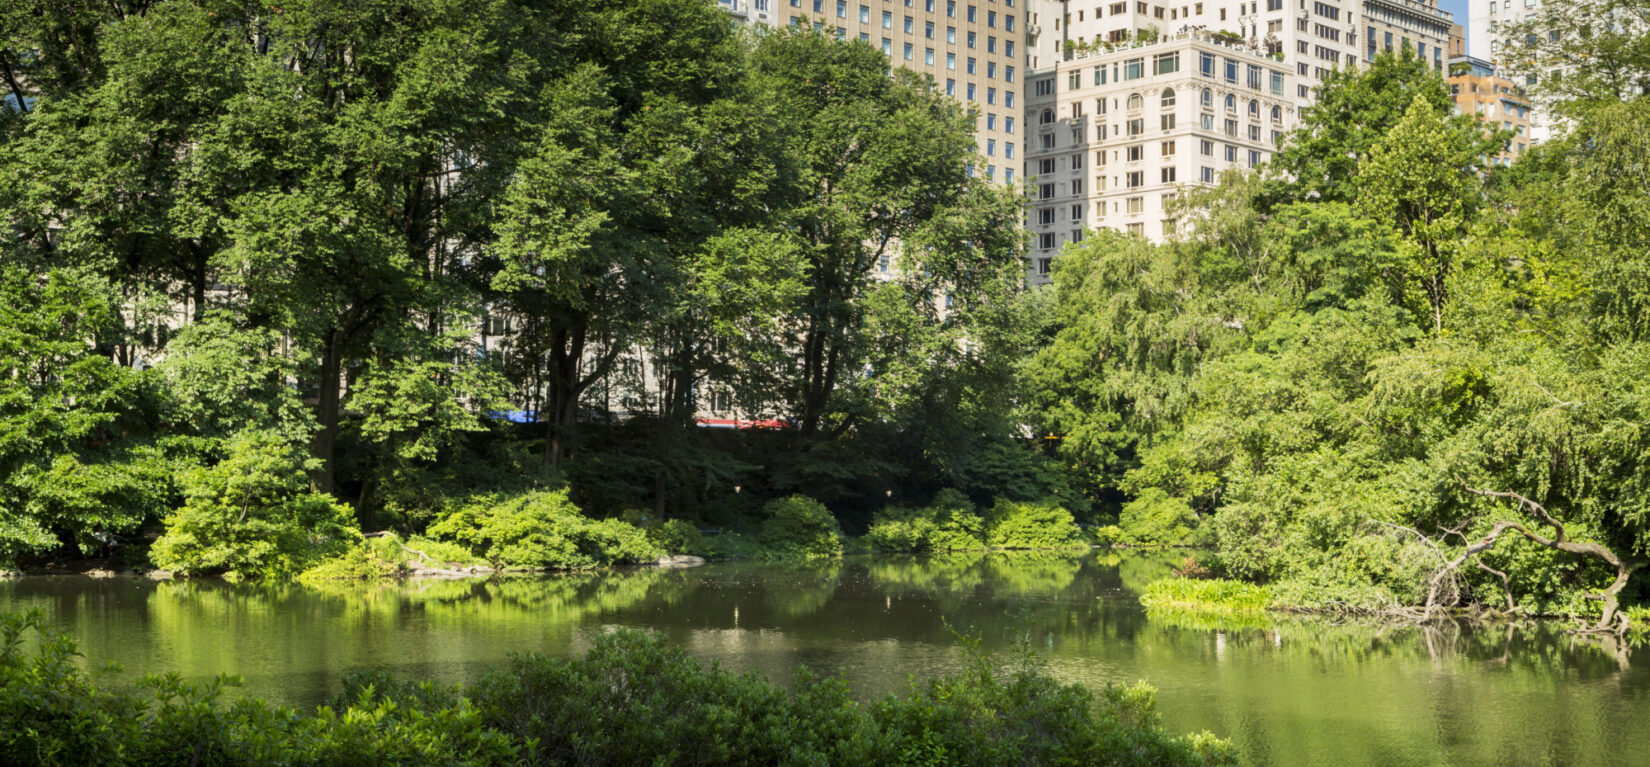 A view of the Pond with the buildings of Fifth Avenue in the background